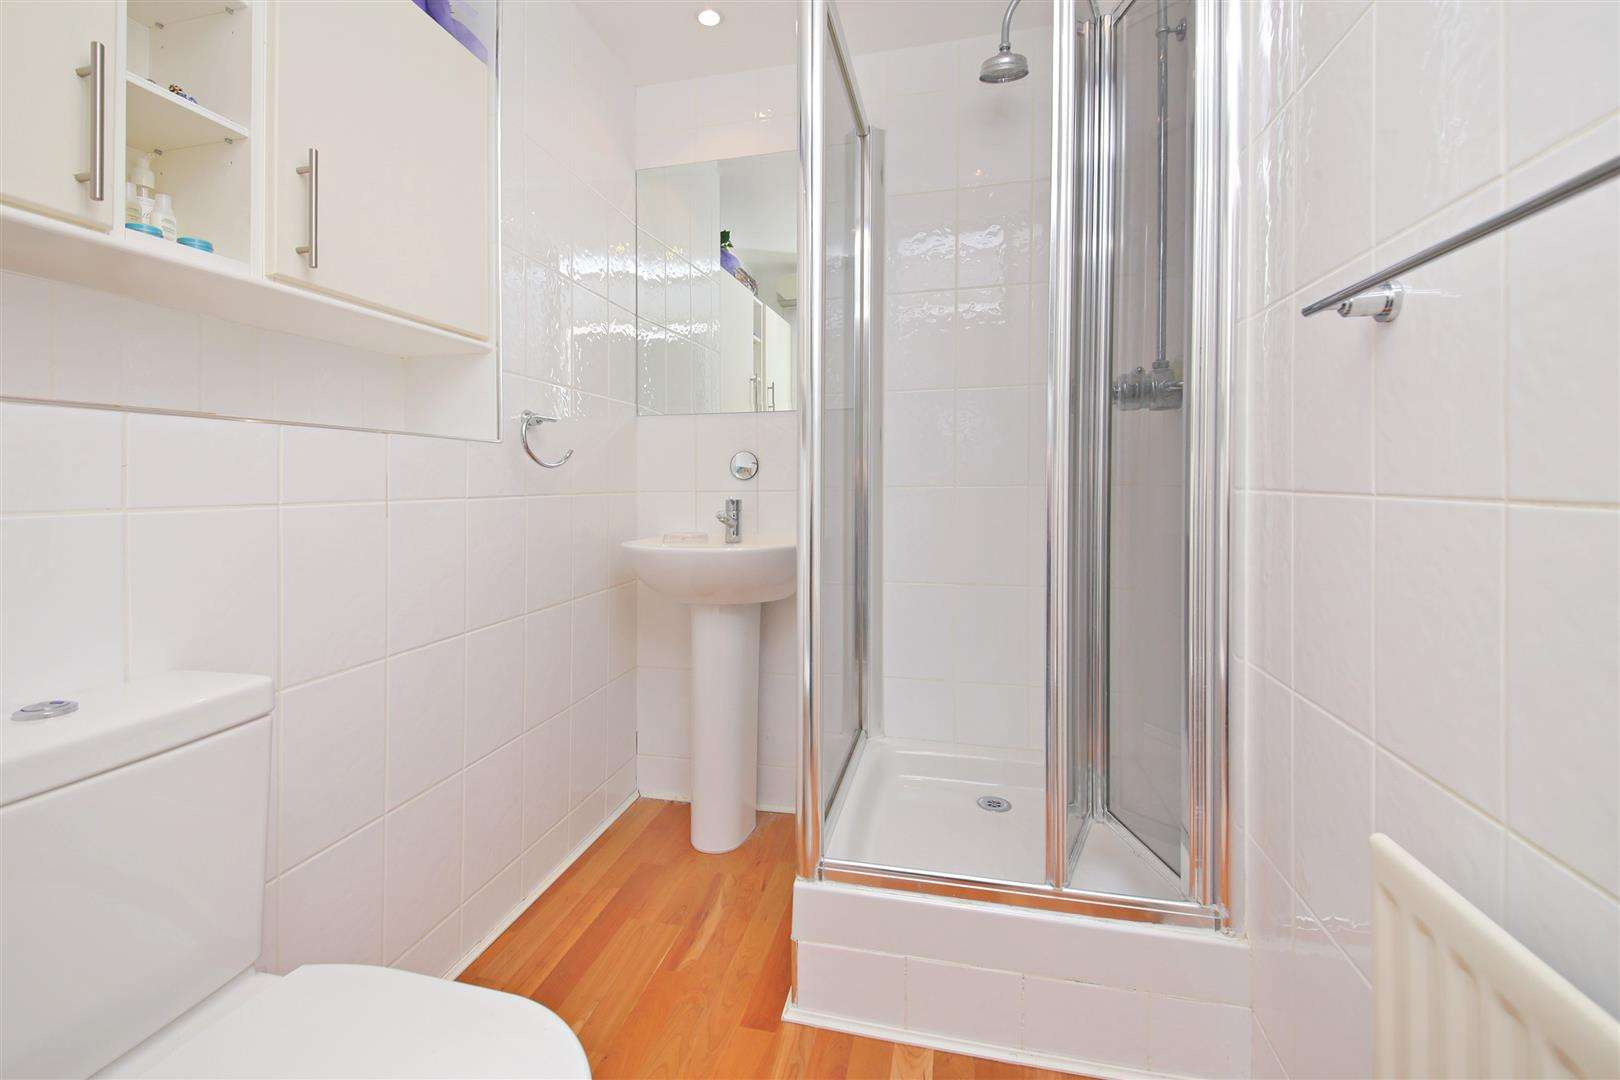 4 bed to rent in Shenley - (Property Image 6)